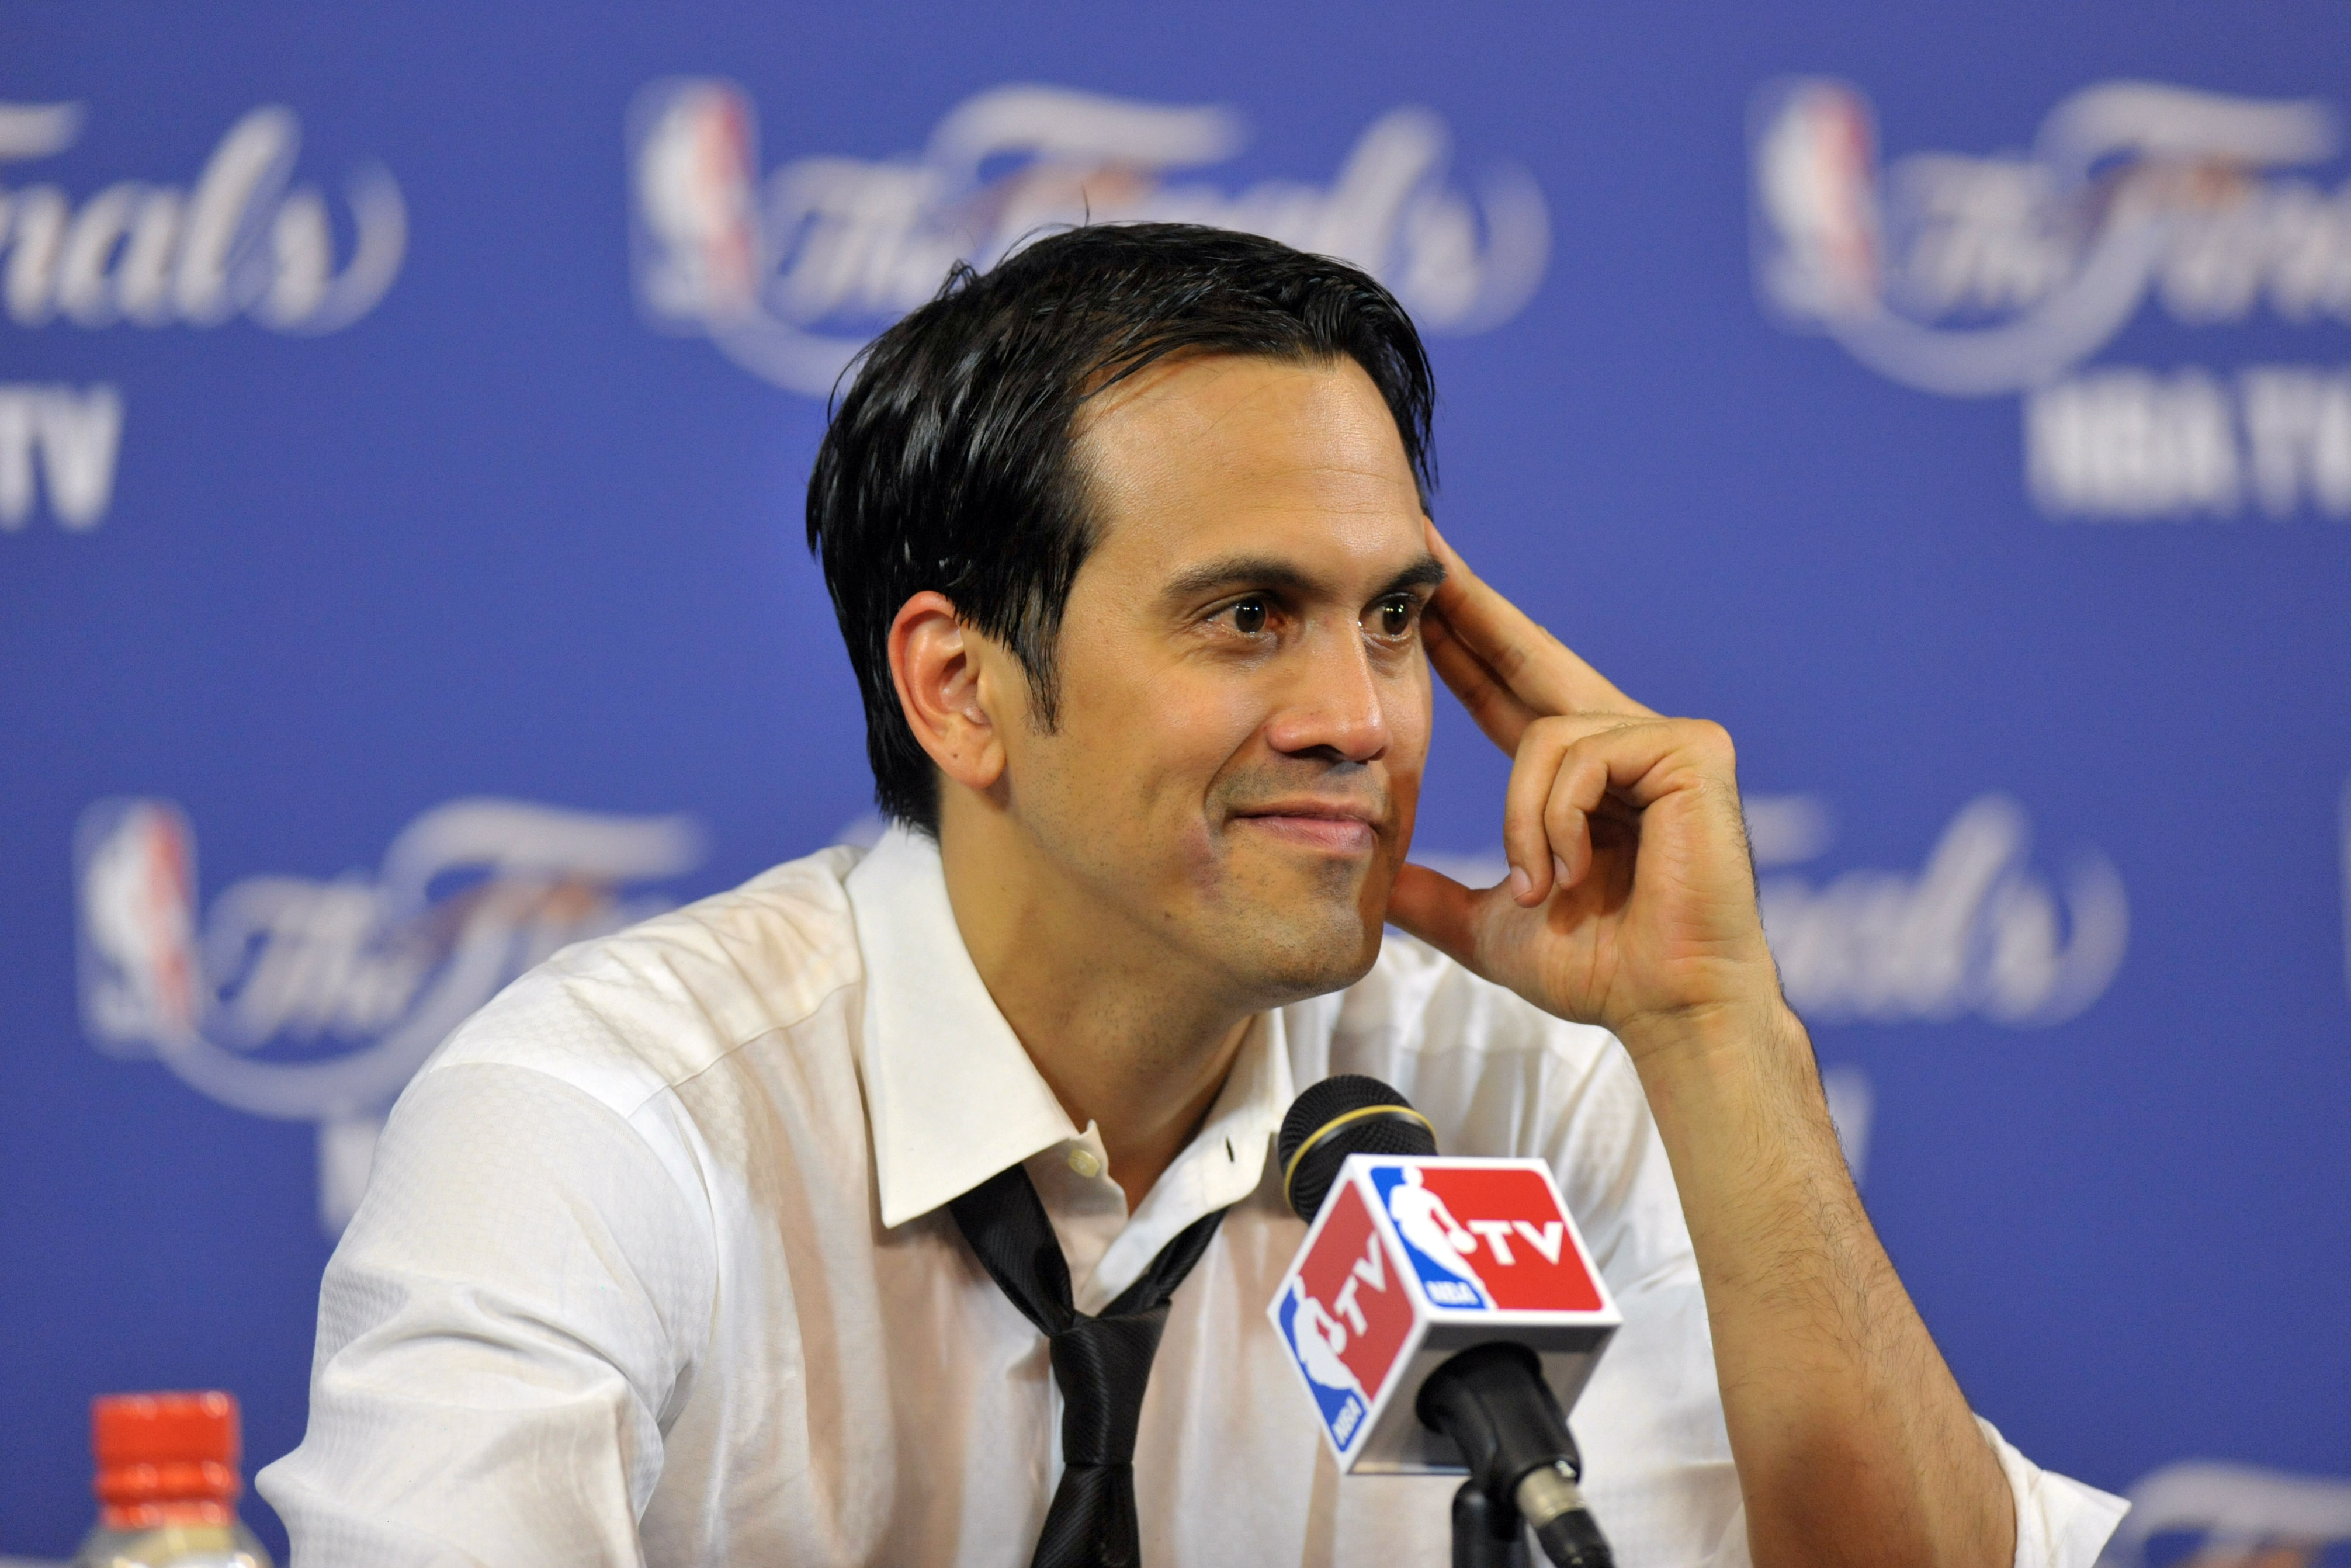 Heat Nation Feature: Spoelstra's Rocky Road to NBA Success